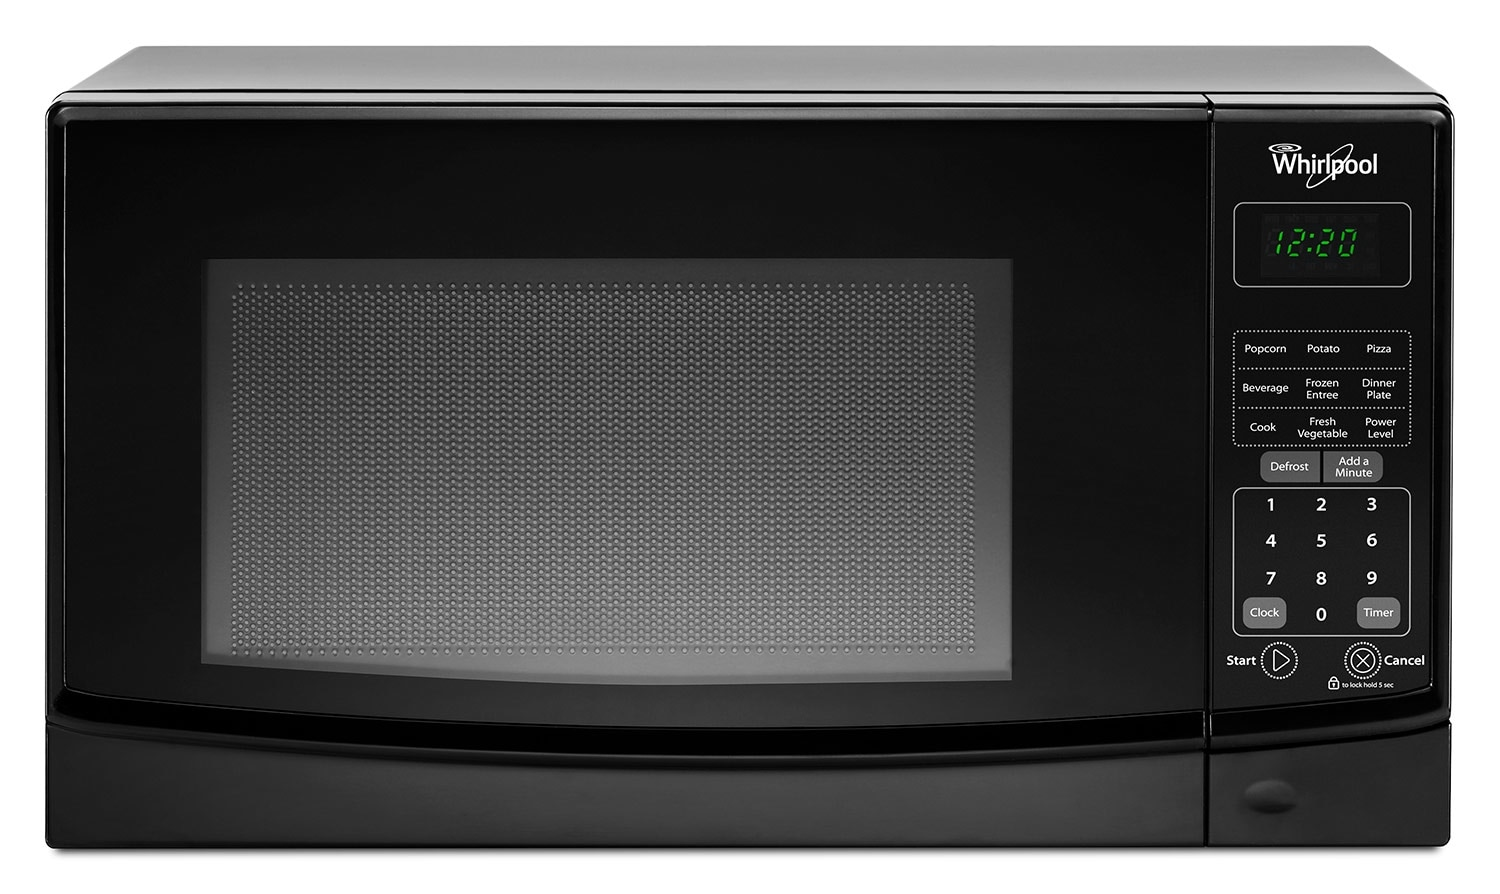 Cooking Products - Whirlpool Black Microwave (0.7 Cu. Ft.) - WMC10007AB